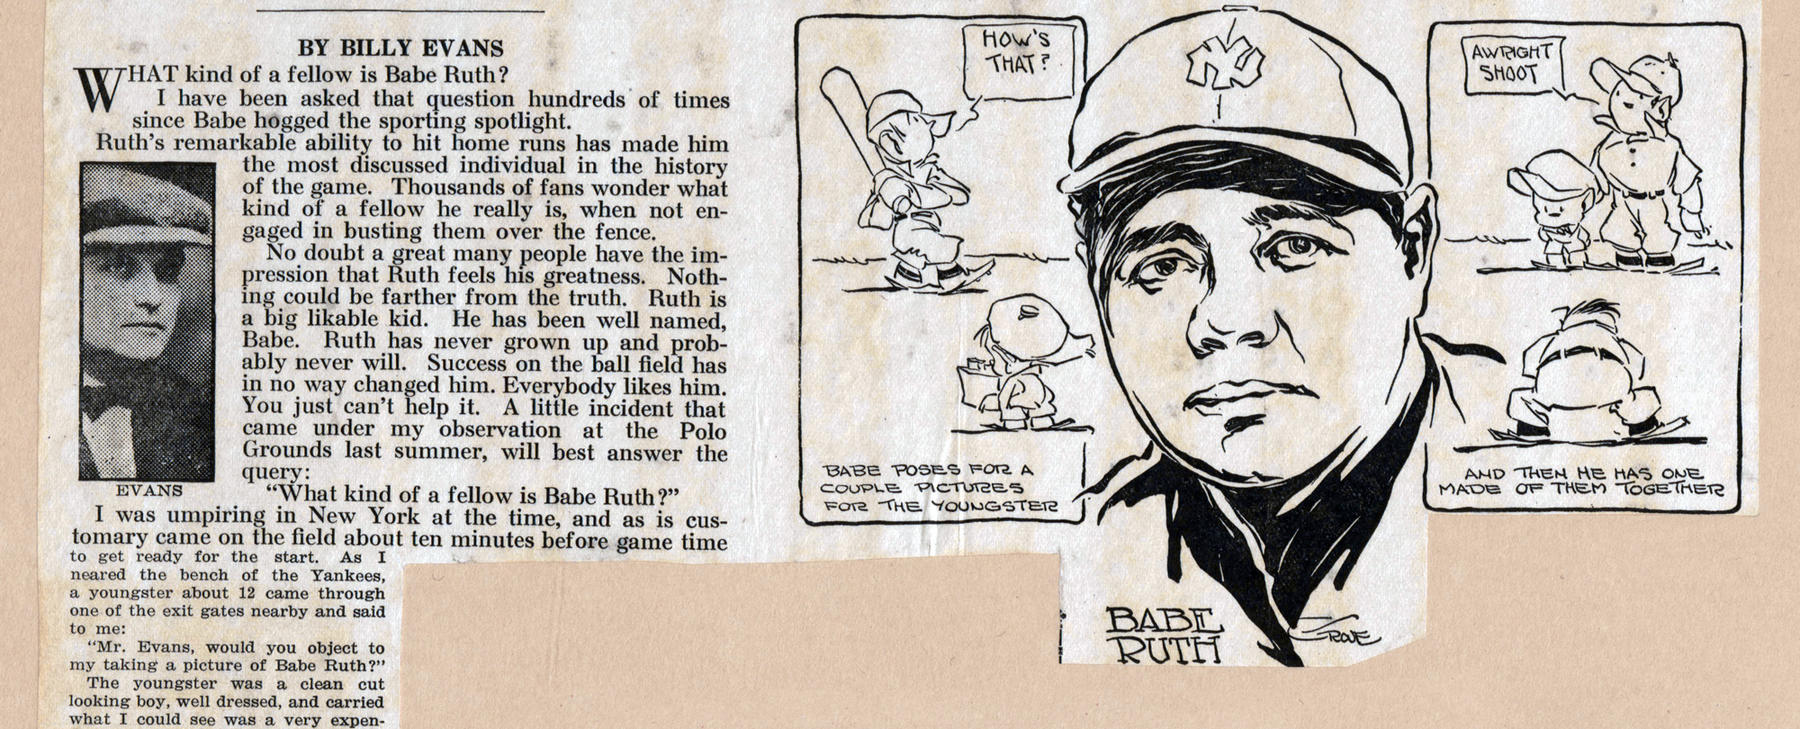 Billy Evans was a writer in addition to being a Hall of Fame umpire. He wrote nationally syndicated columns for the Newspaper Enterprise Association. In this column, from a recently digitized page in the Babe Ruth Scrapbooks, Evans gives his answer to the question, What kind of fellow is Babe Ruth? BL-161-56-1.  (National Baseball Hall of Fame Library)